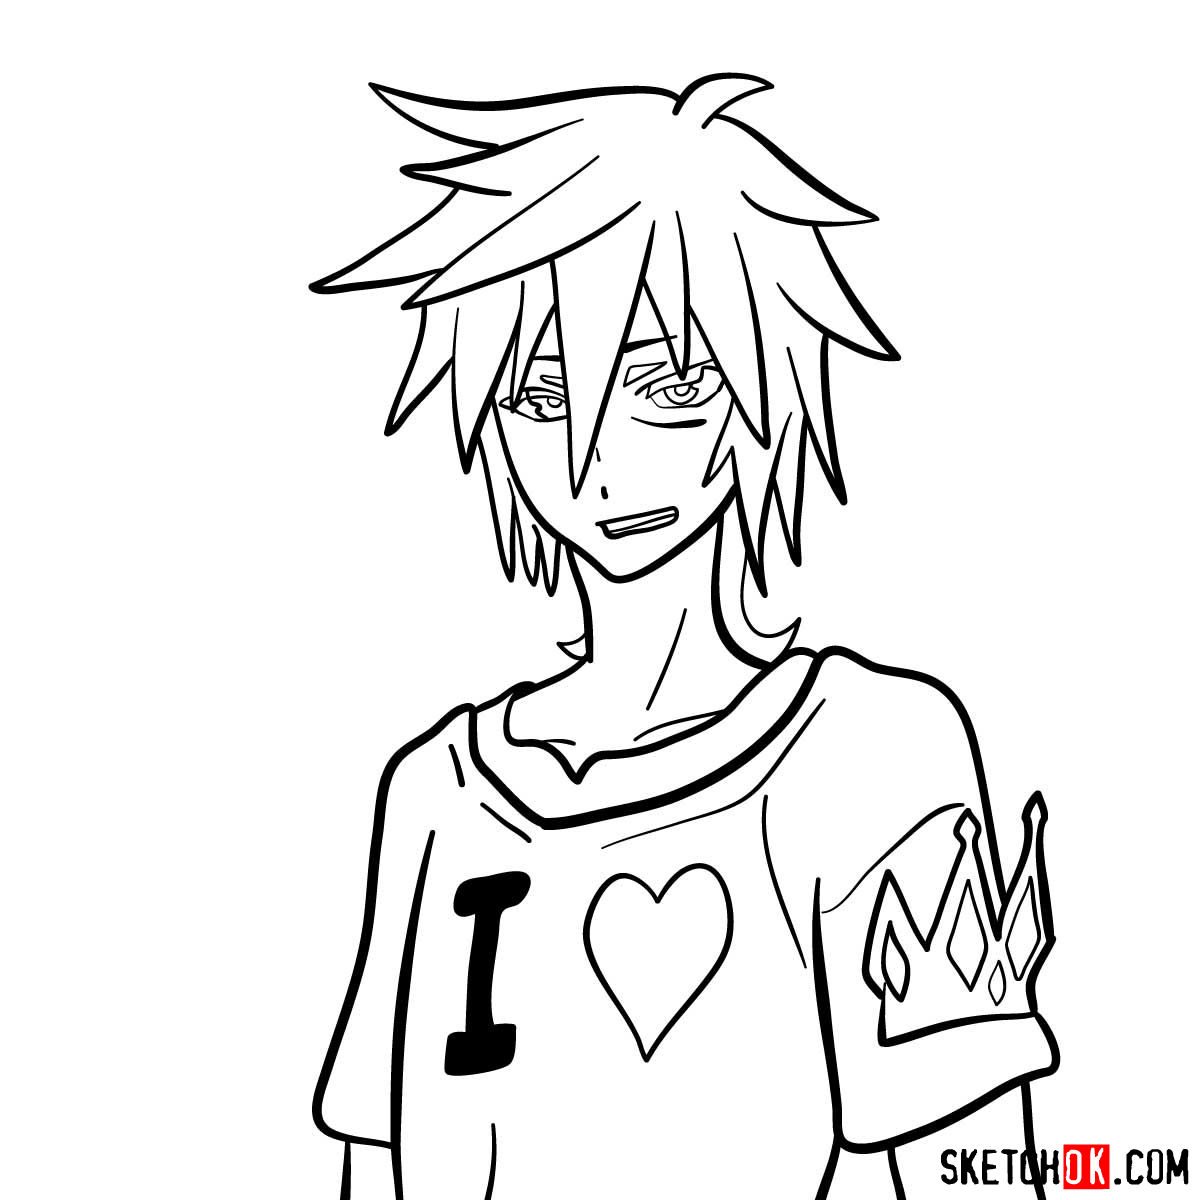 How to draw Sora from No Game No Life anime